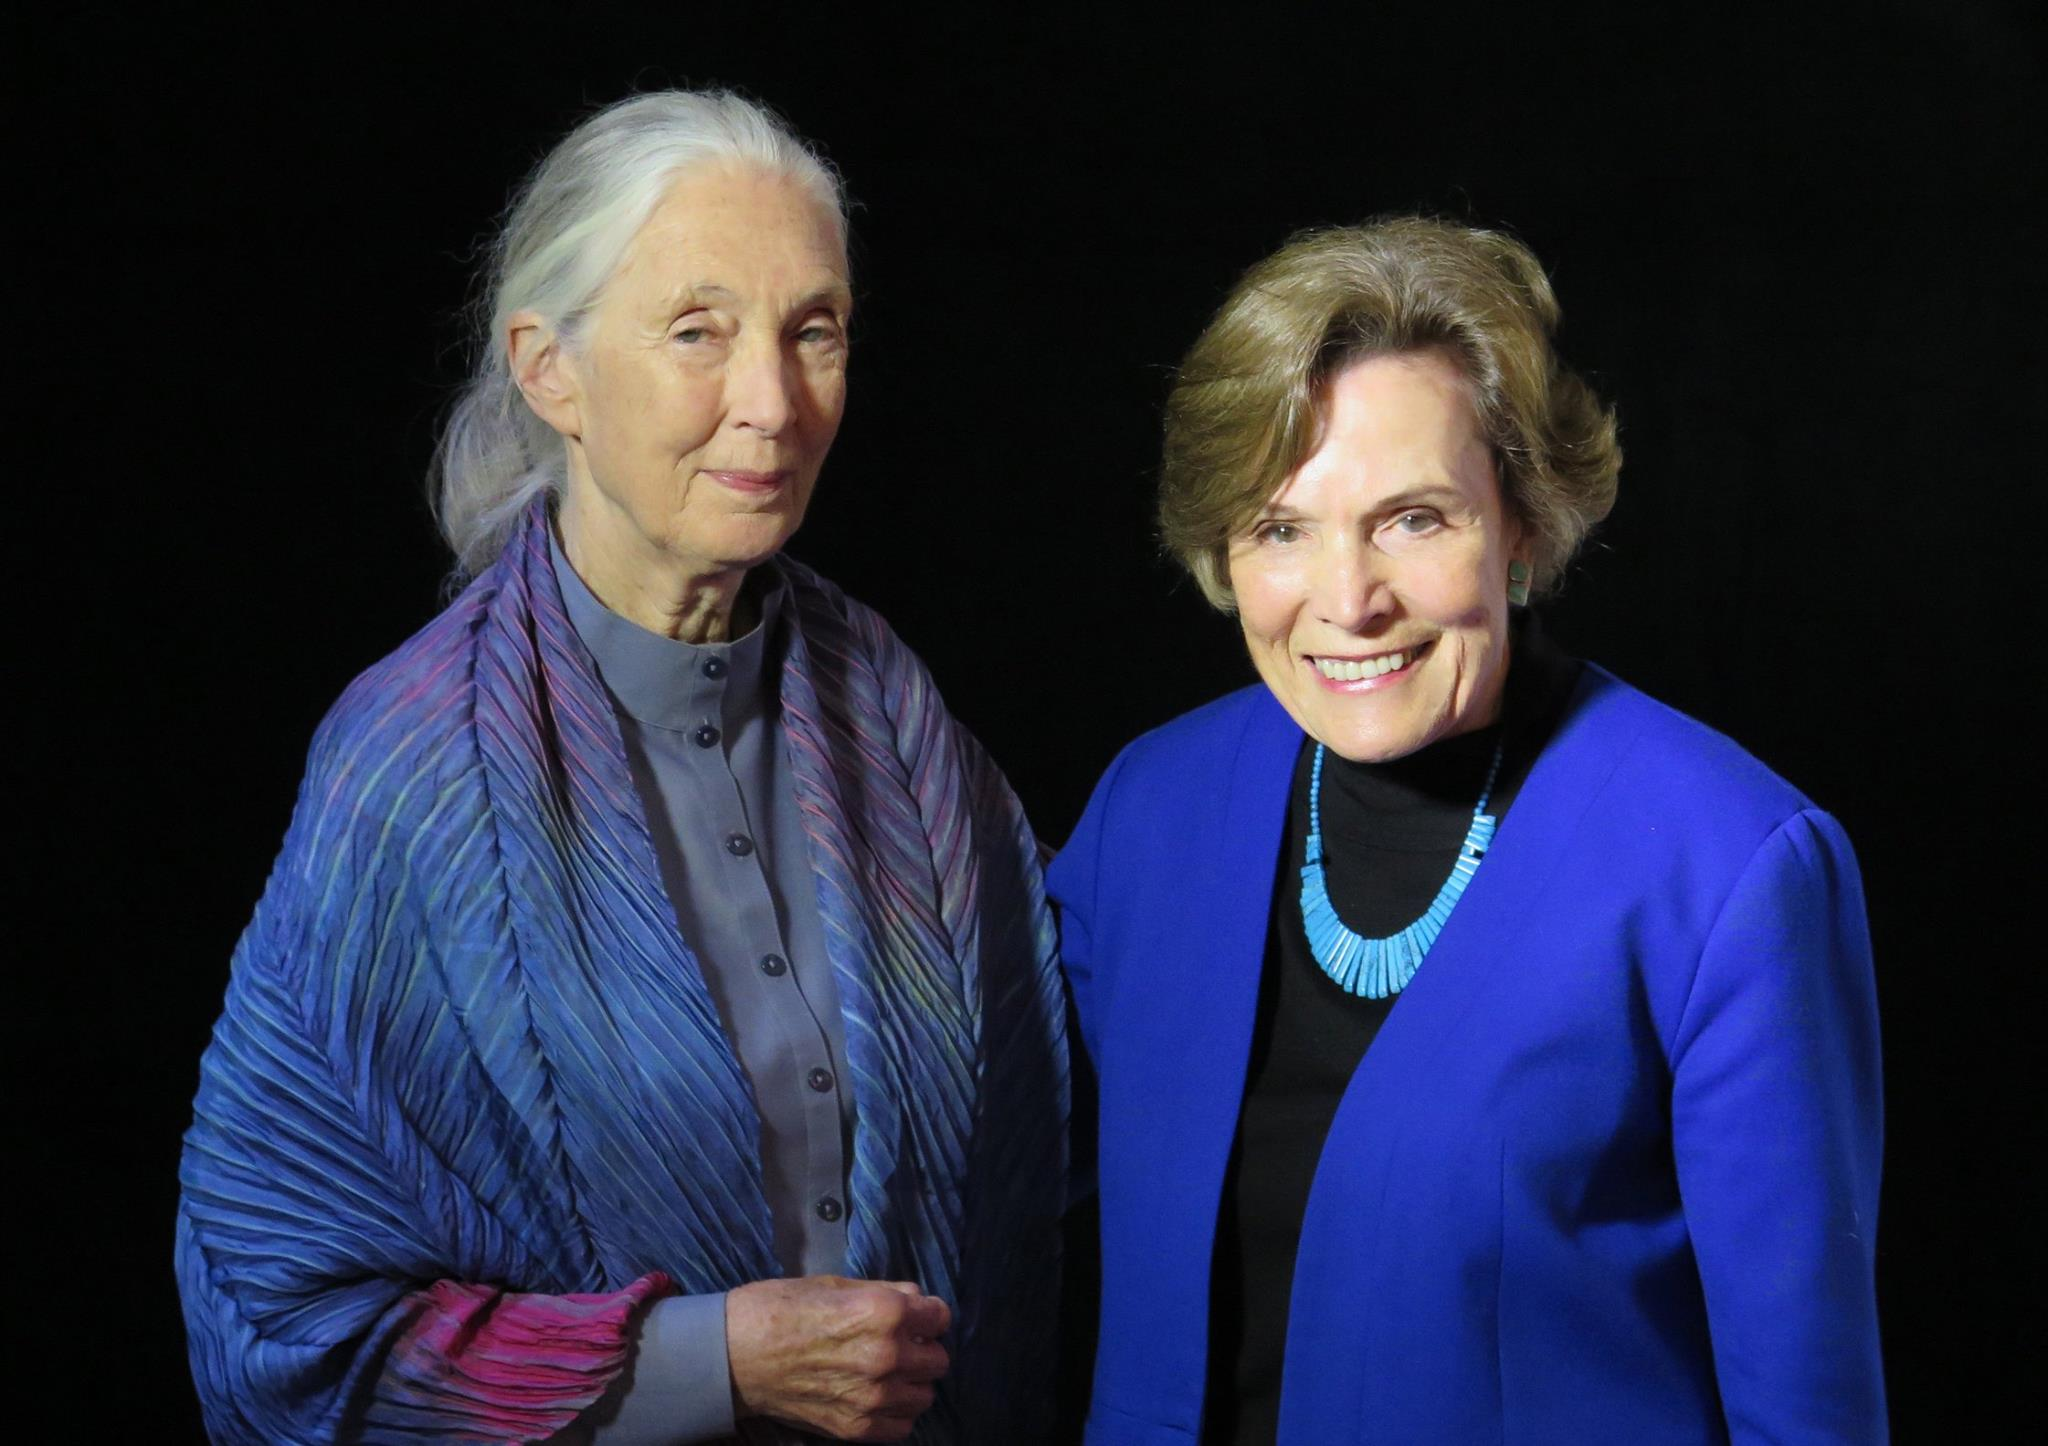 Drs. Jane Goodall and Sylvia Earle. Photo: ABC/Miami